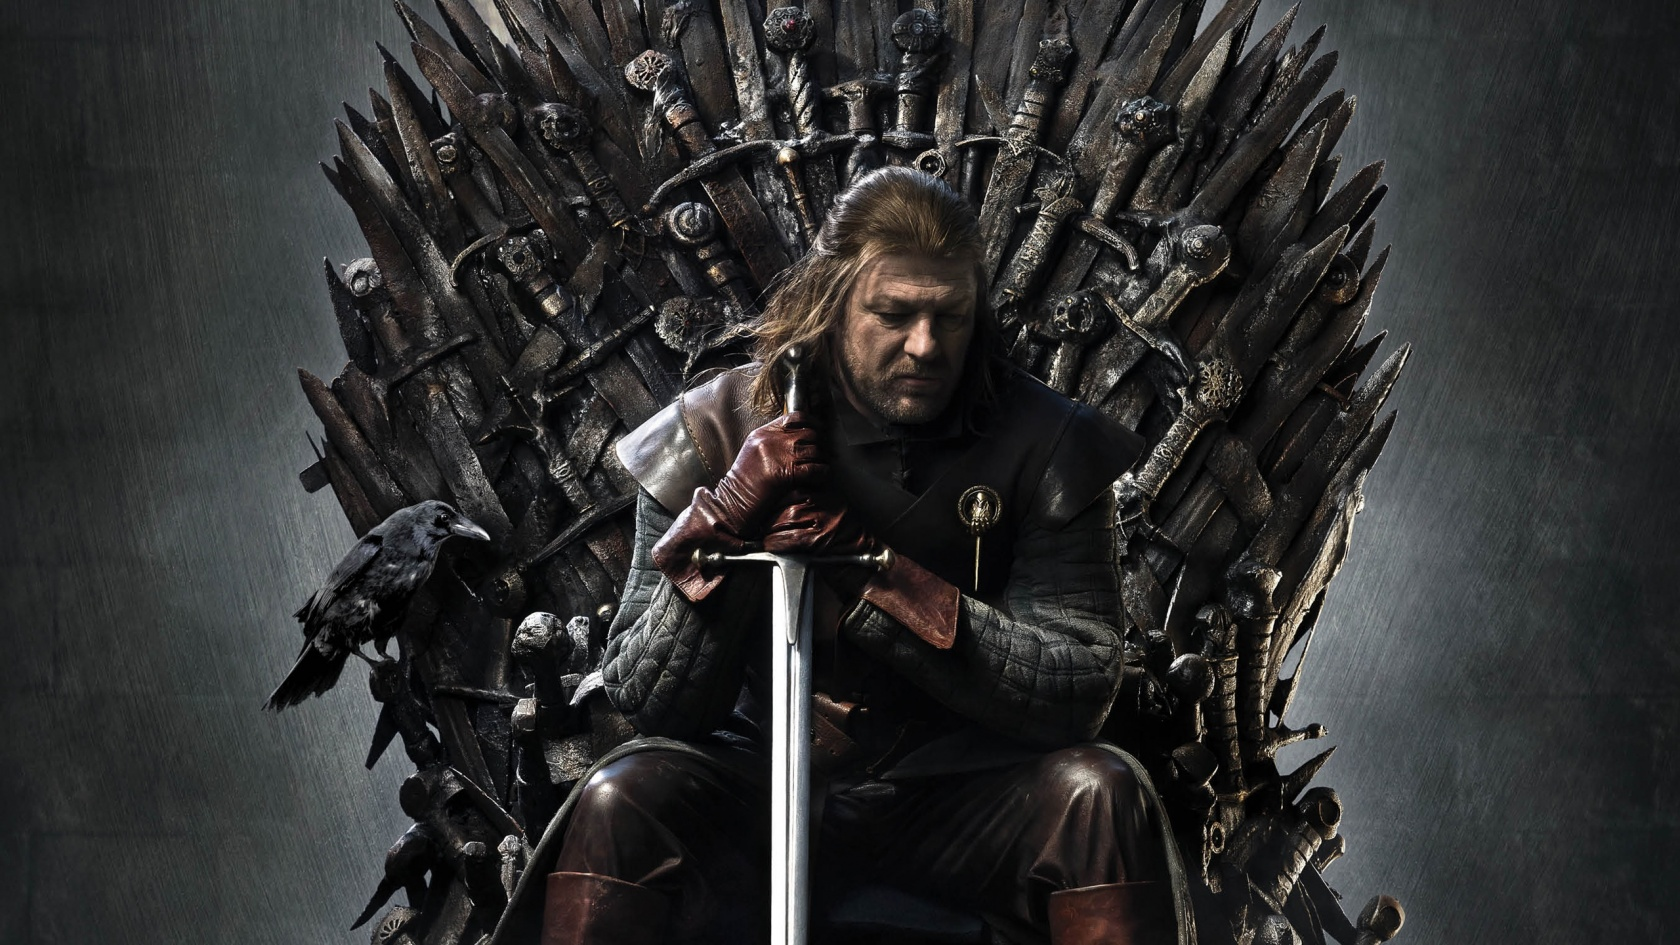 game_of_thrones-sean bean